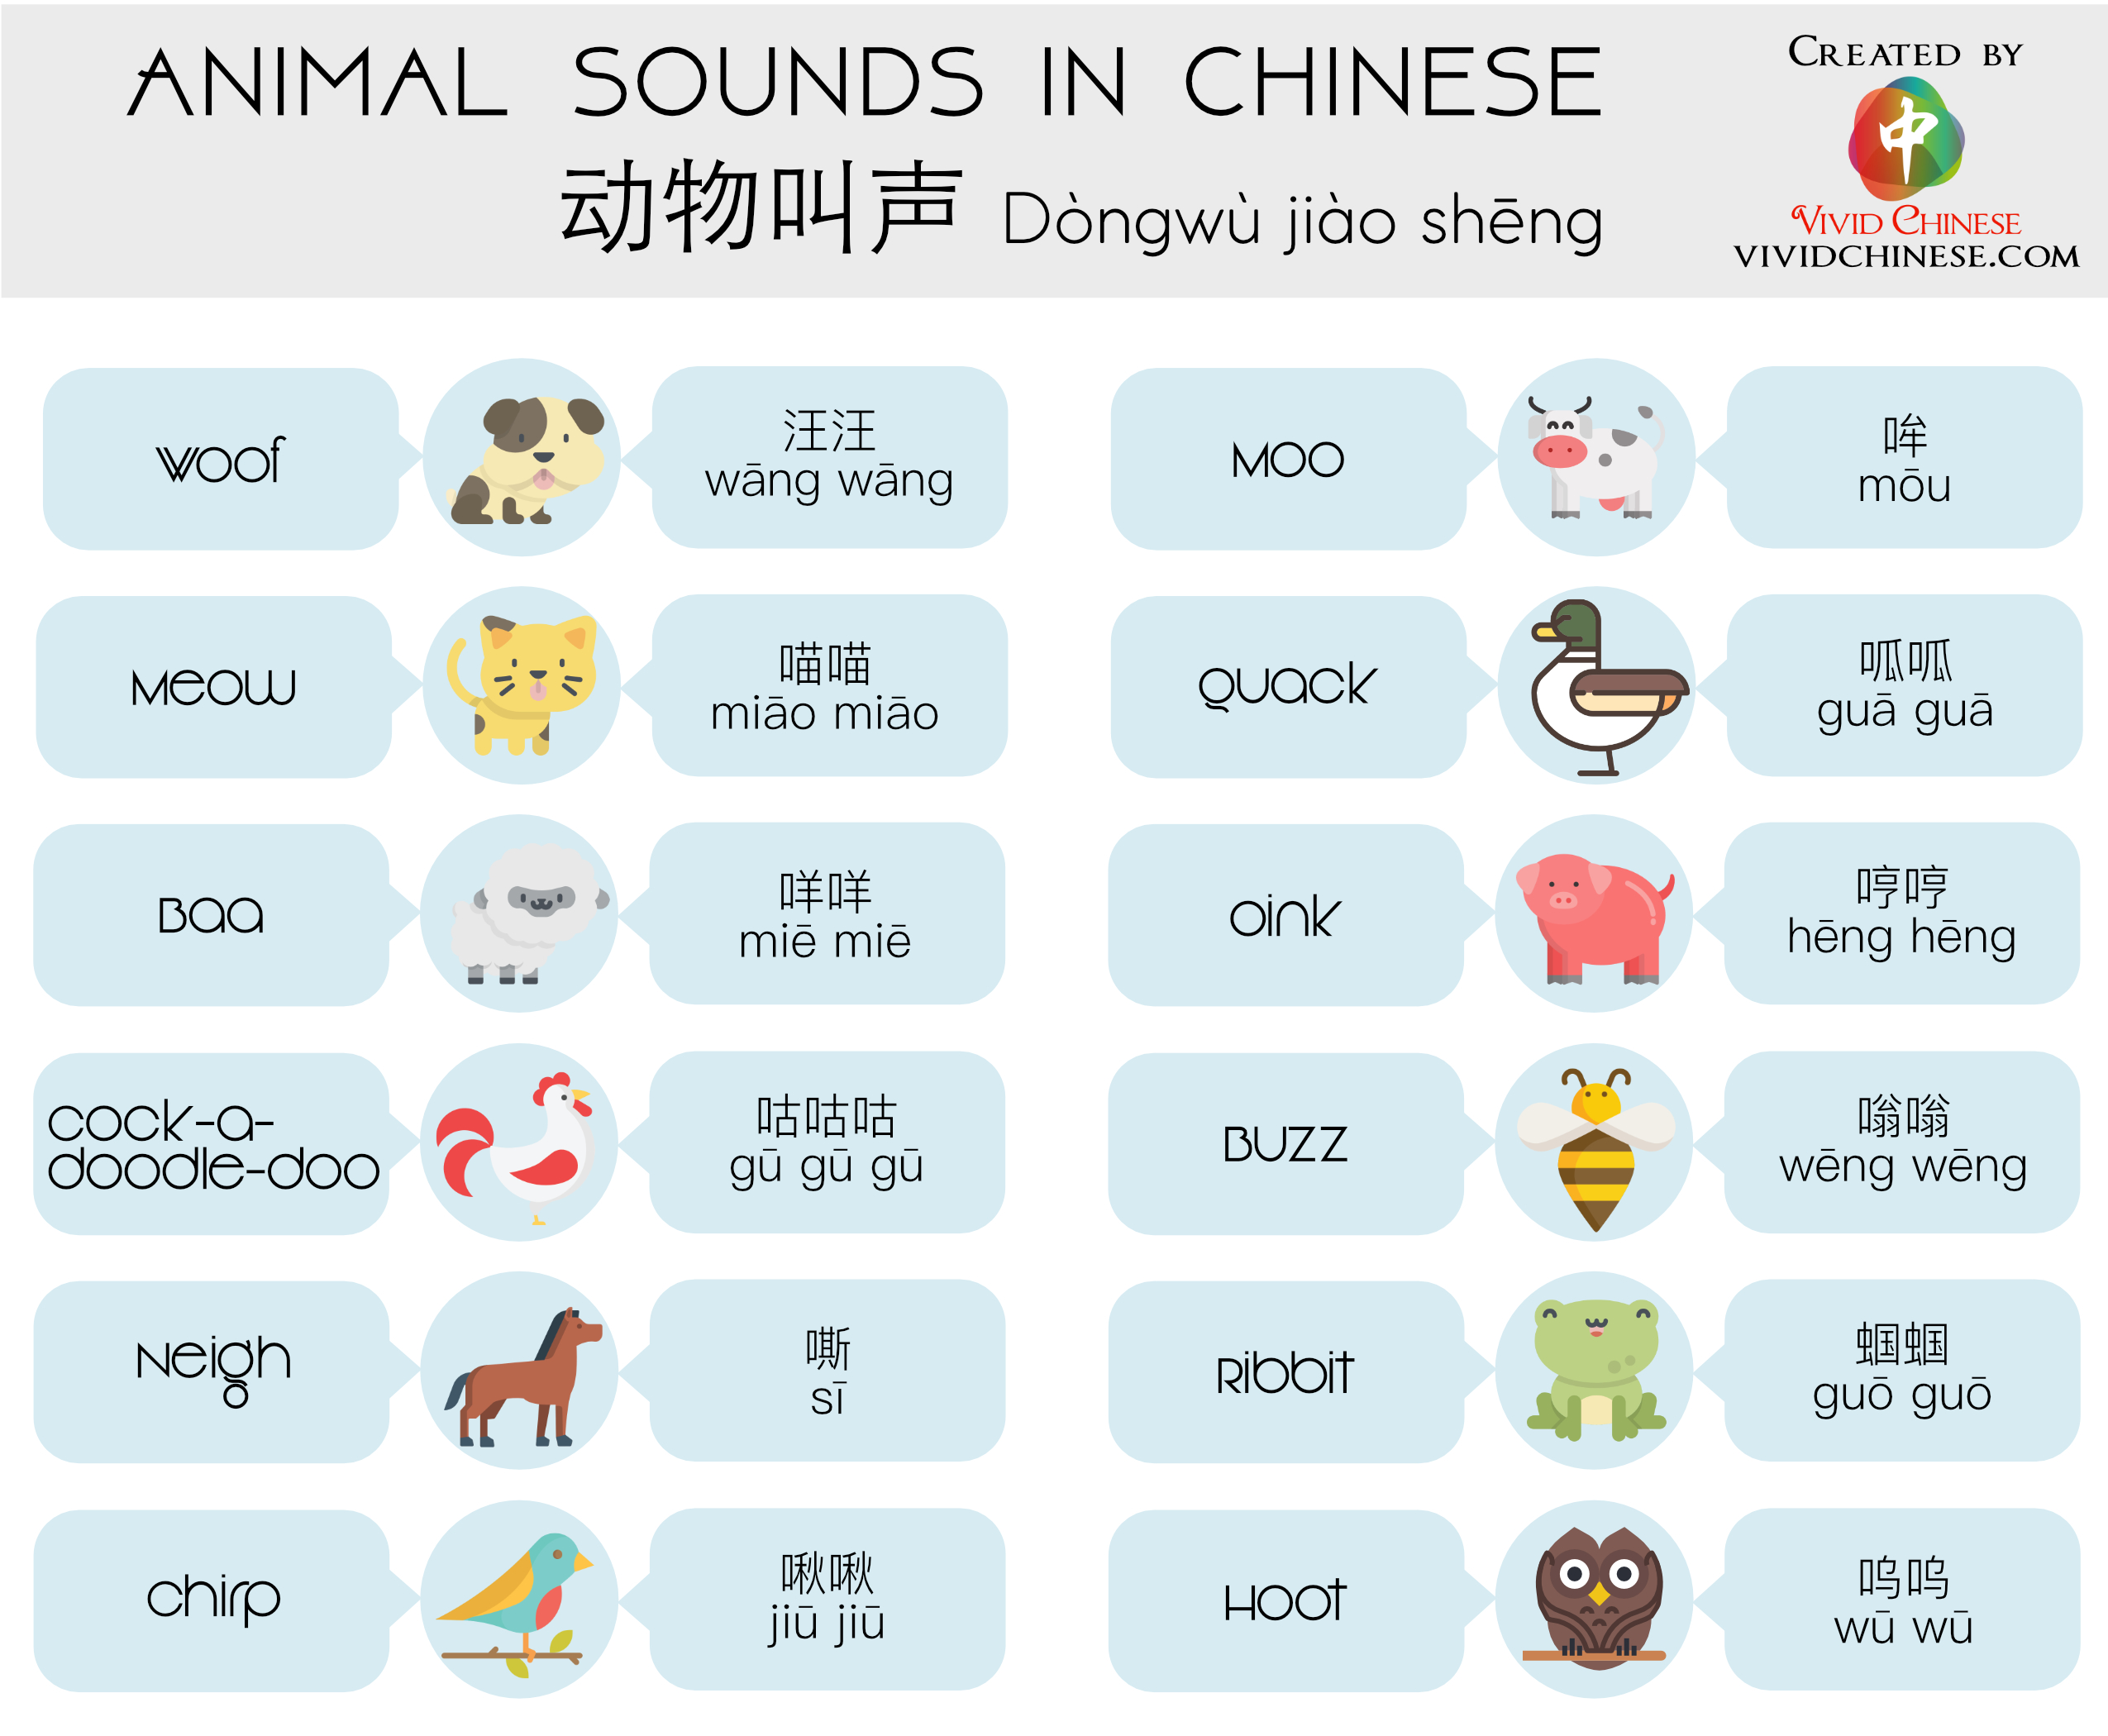 Animal sounds in Chinese Infographic